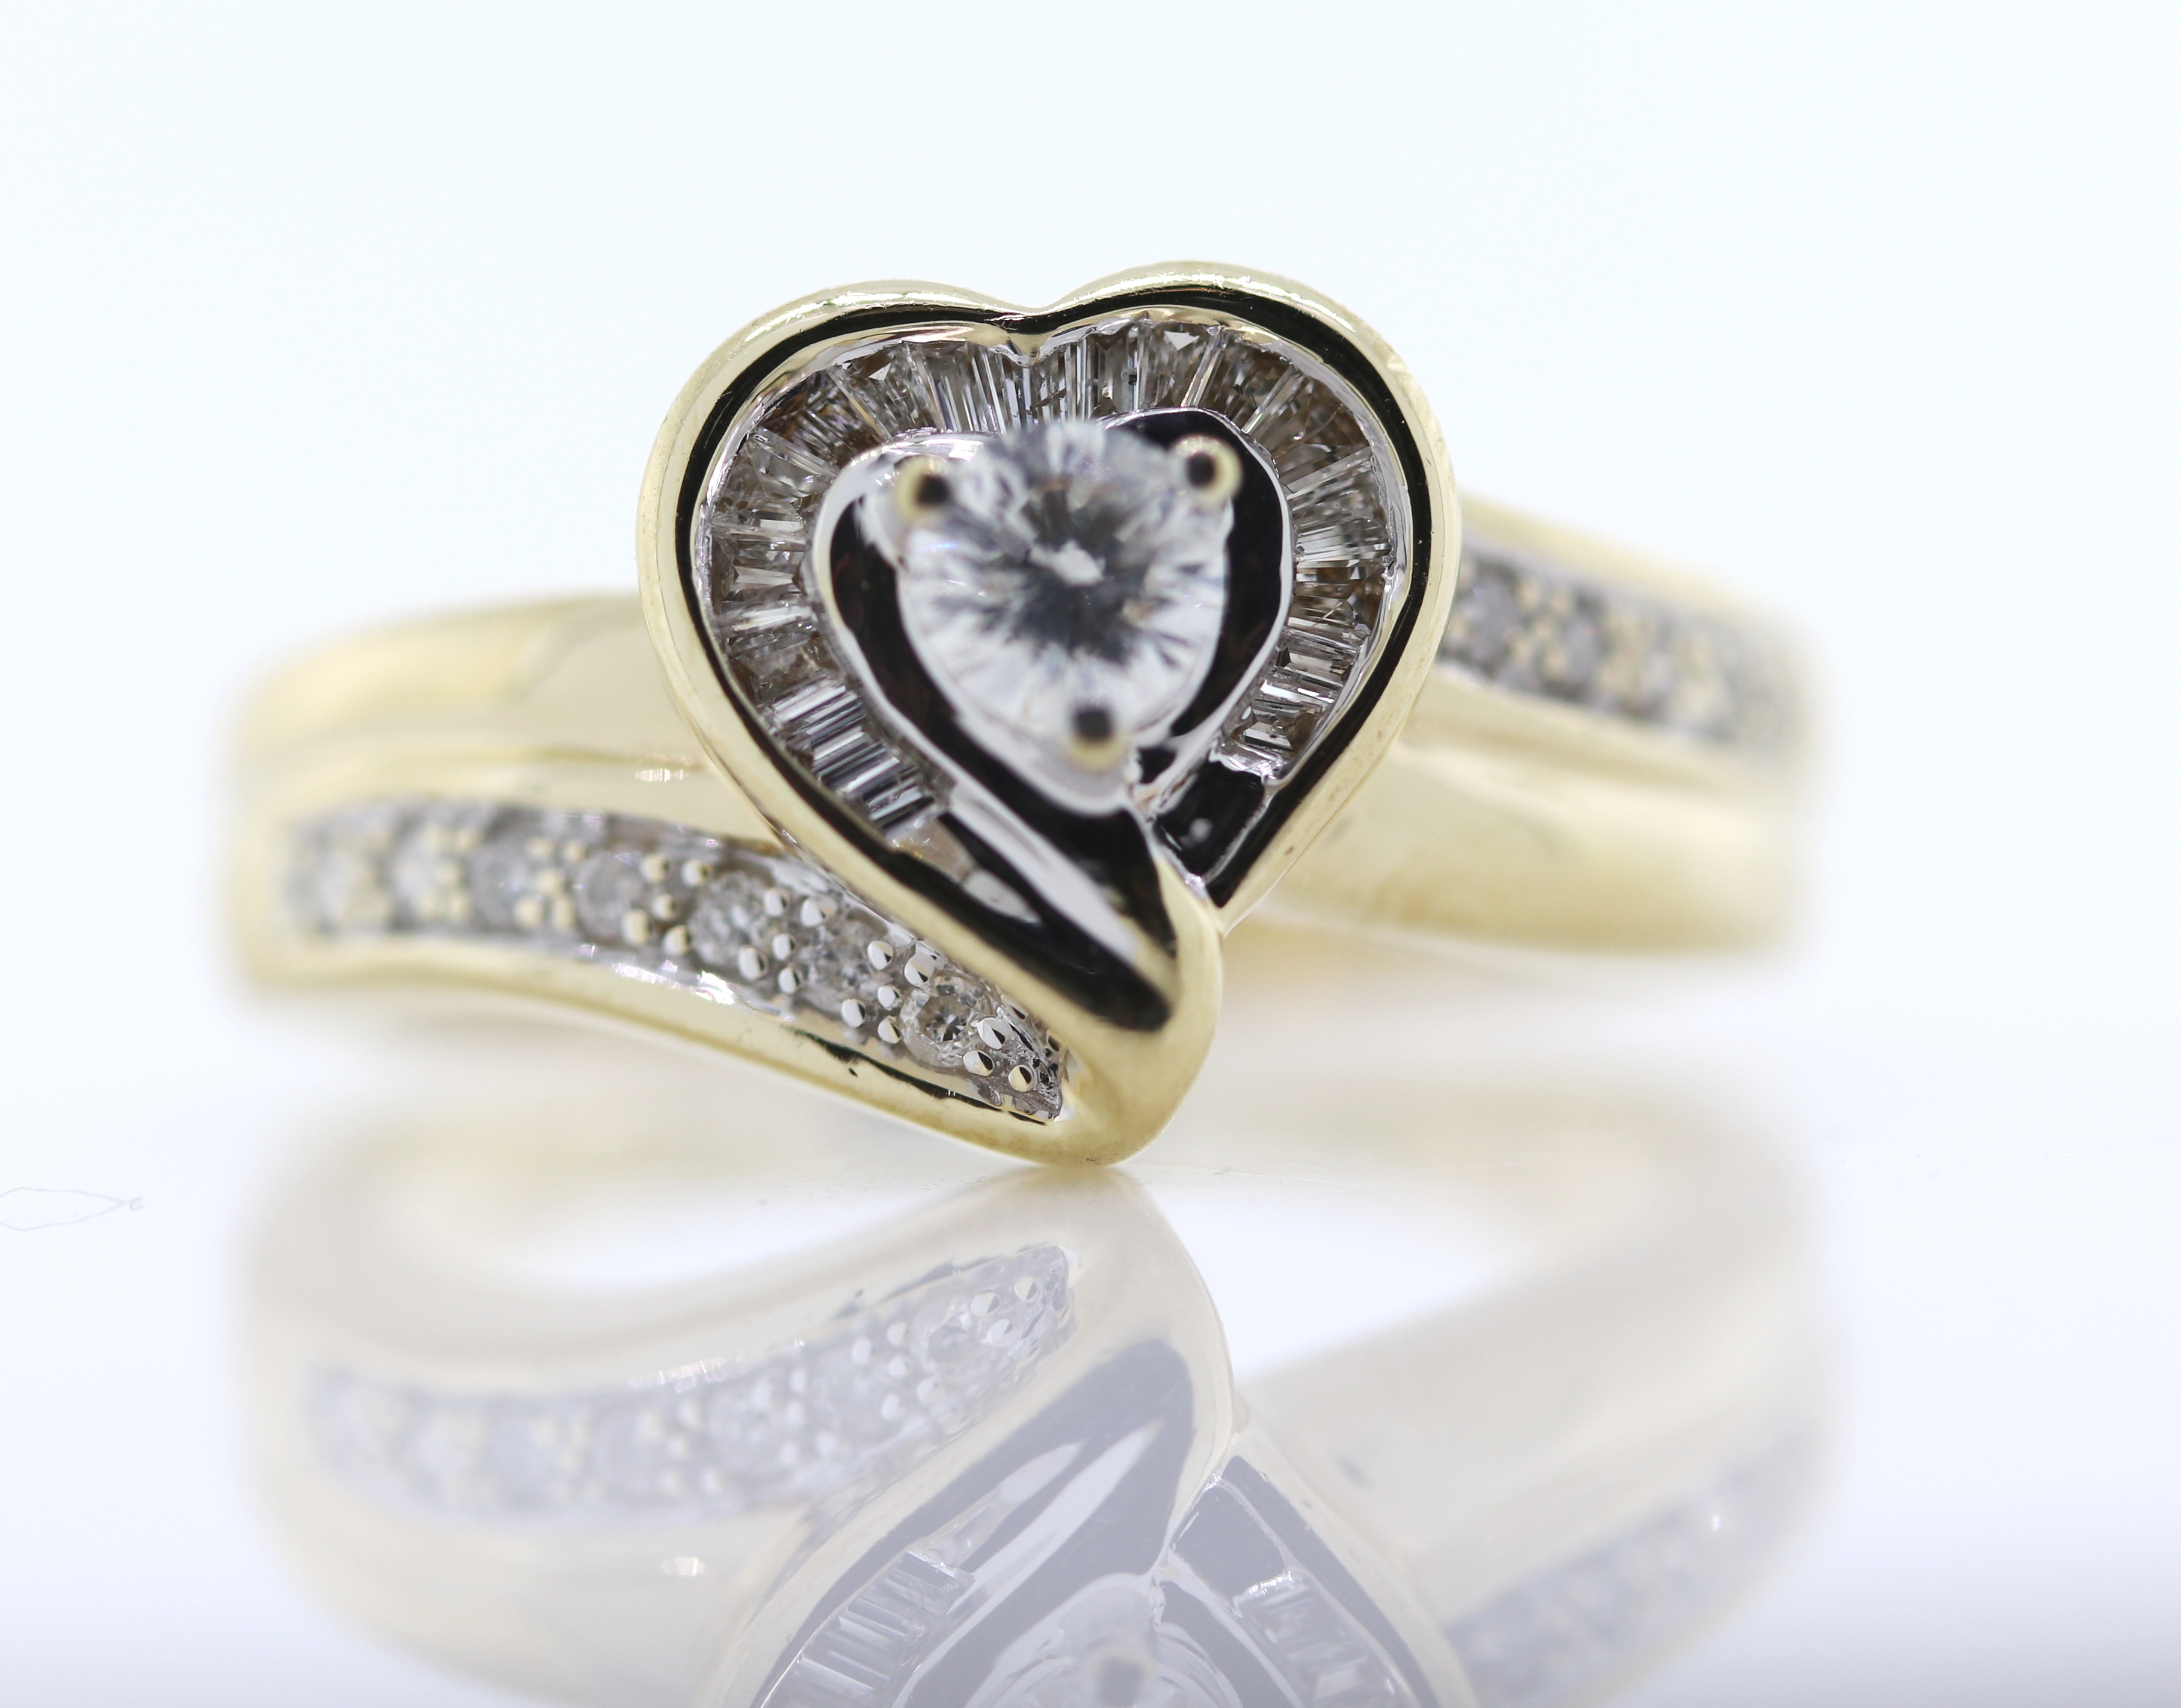 Vintage wedding ring 14k white gold diamond ring   Fine Estate Jewelry genuine 3 Diamond band size 6.5 and is sizable weighs 2 grams